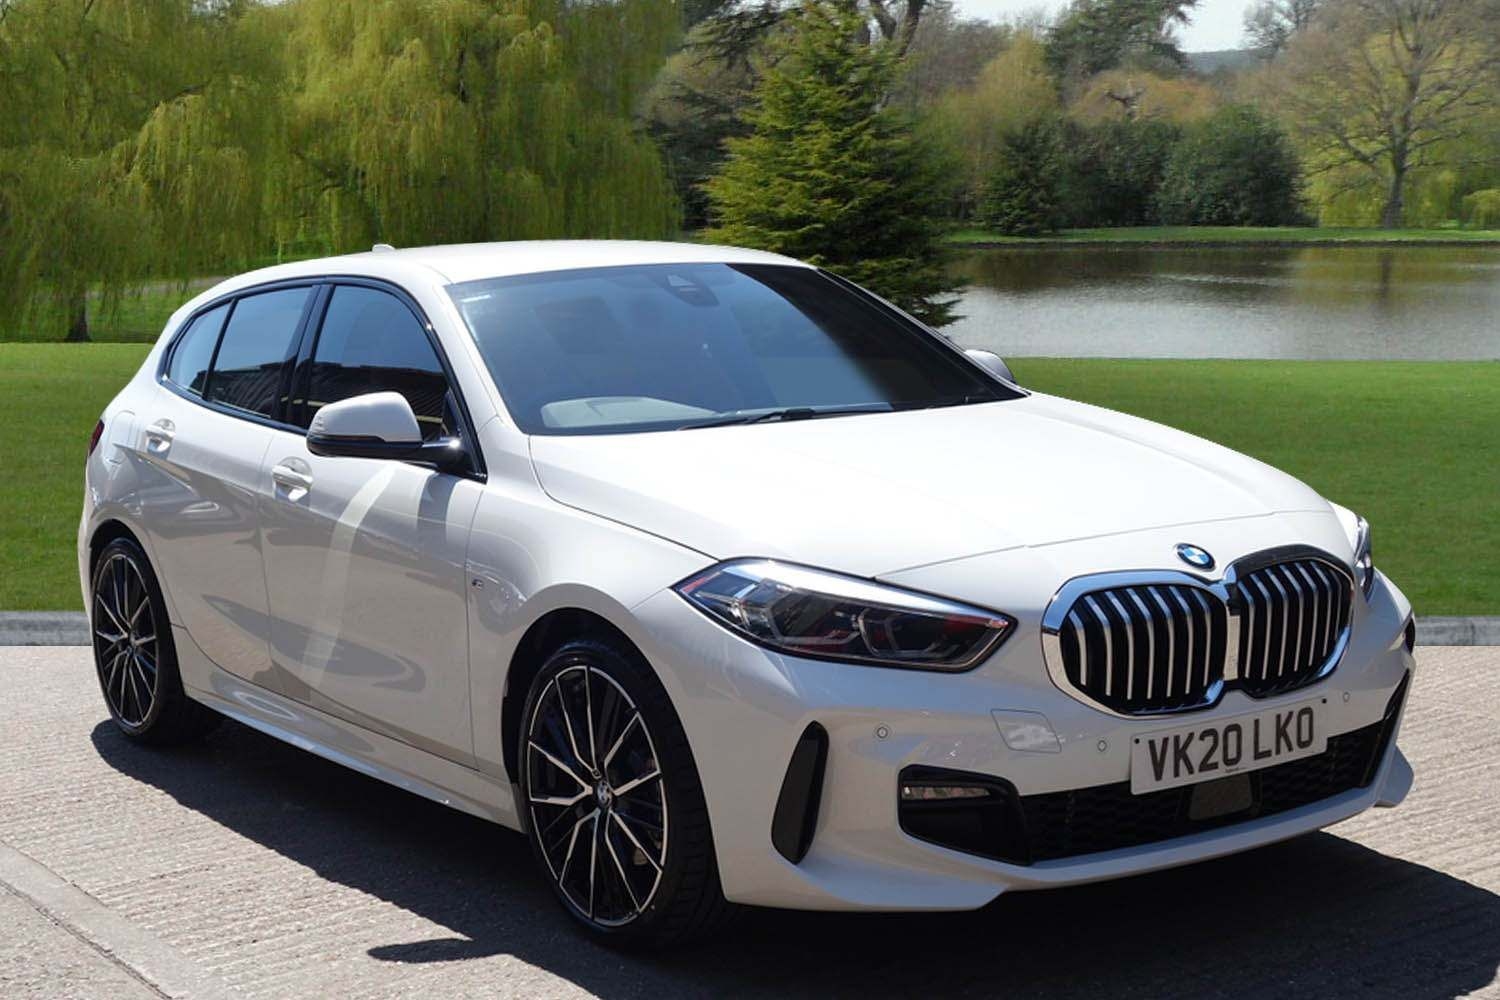 Bmw 1 Series White 5dr 2020 For Sale In Warwick Rybrook